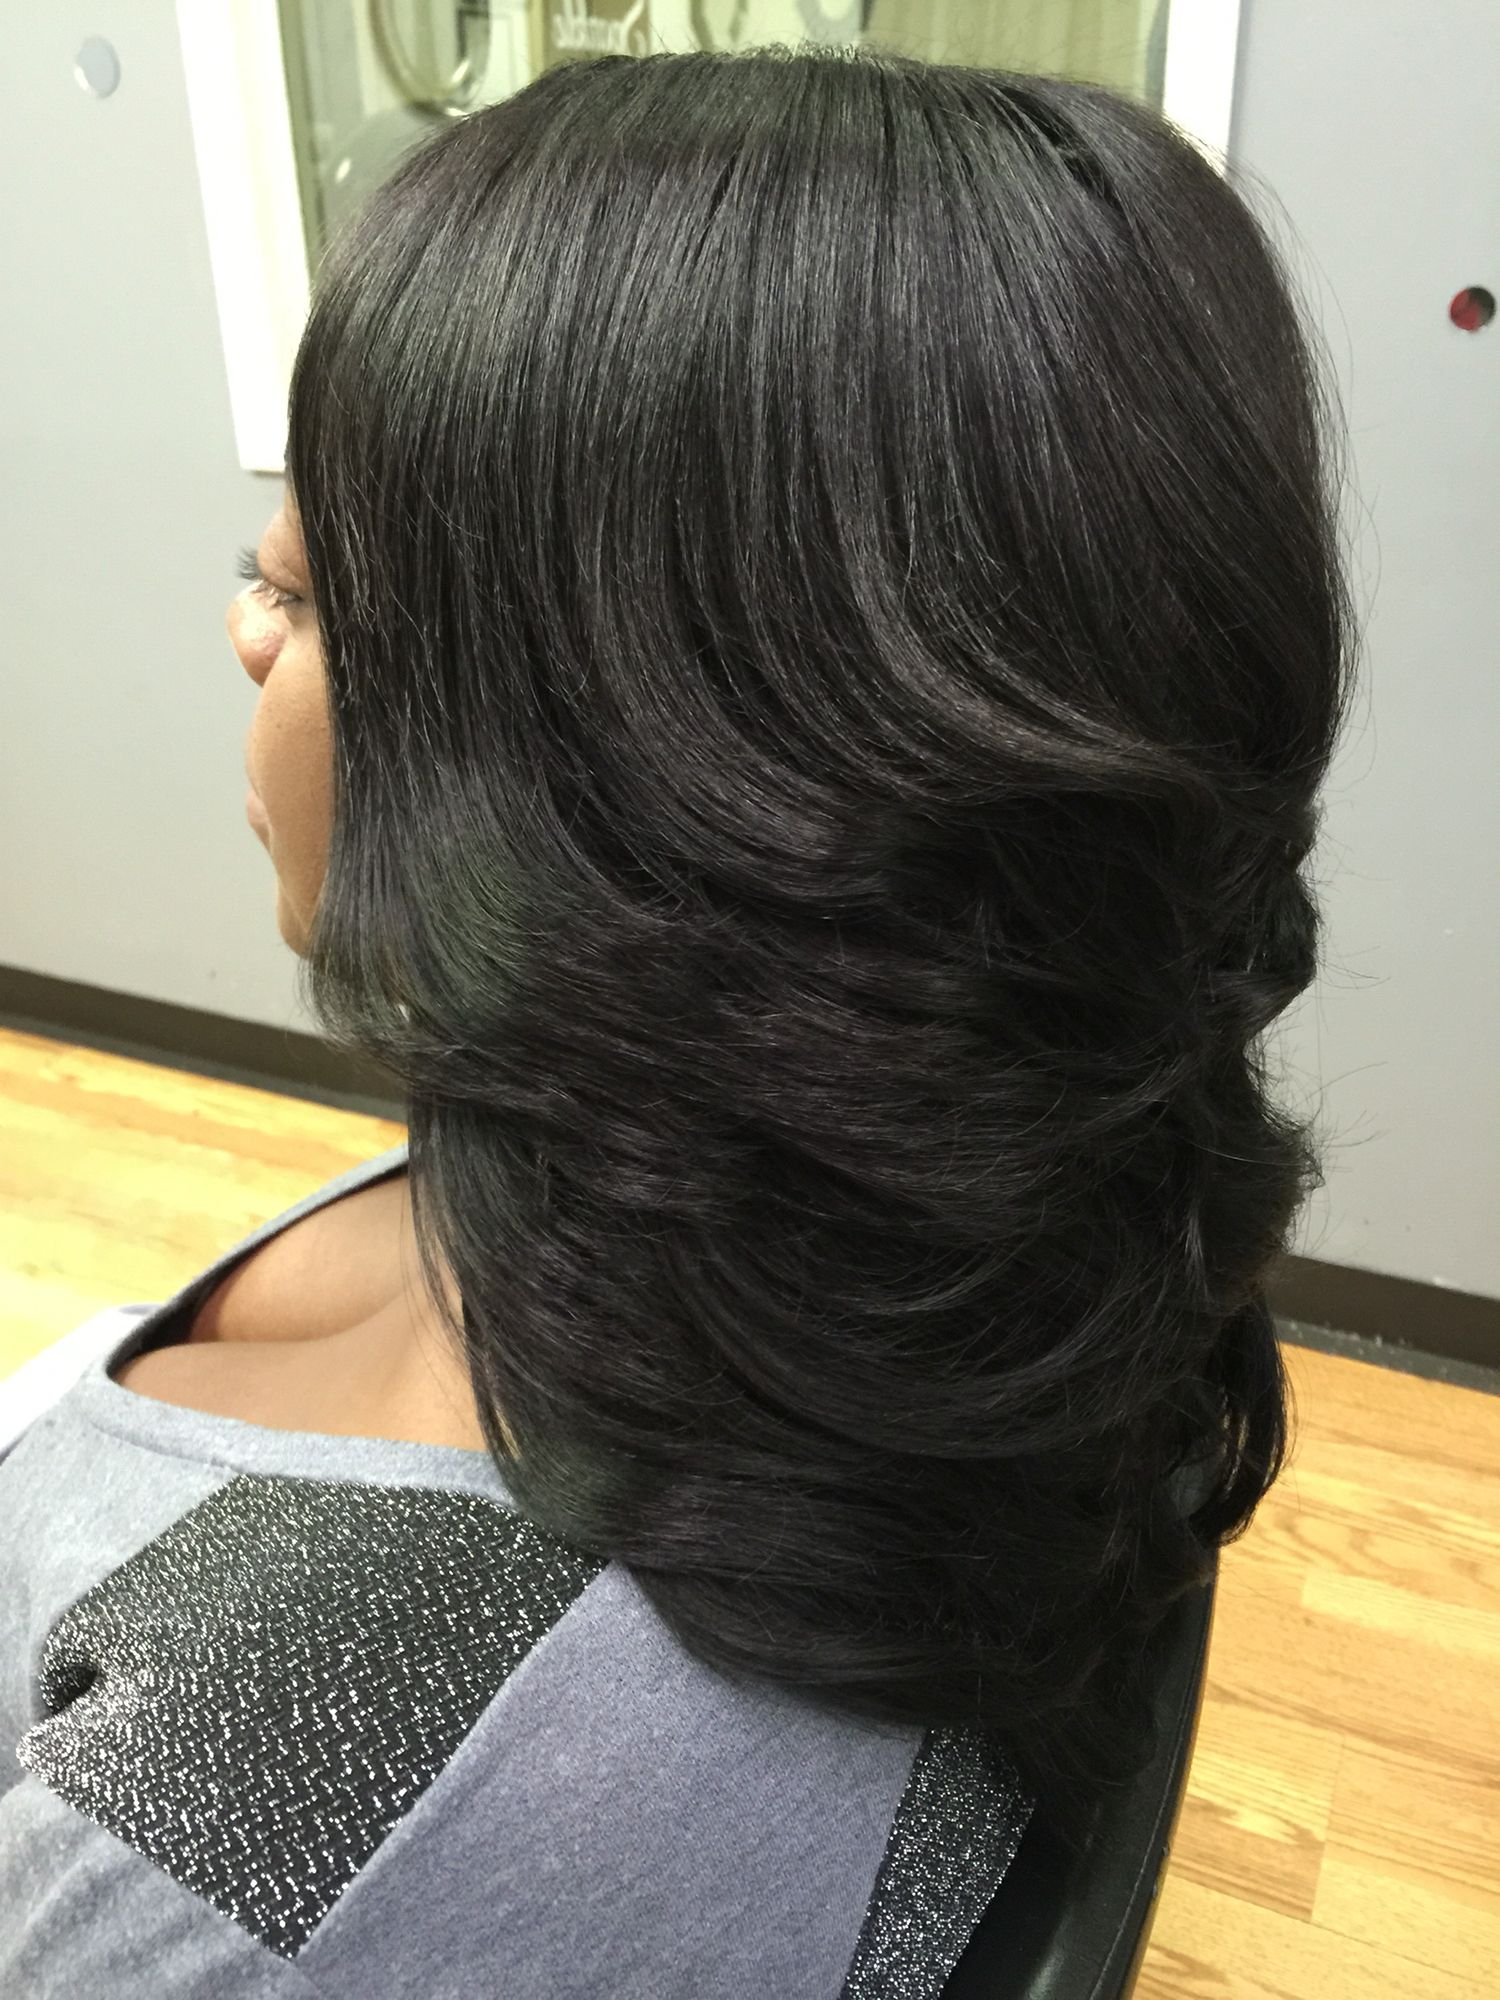 Long layered quick weave Long weave hairstyles